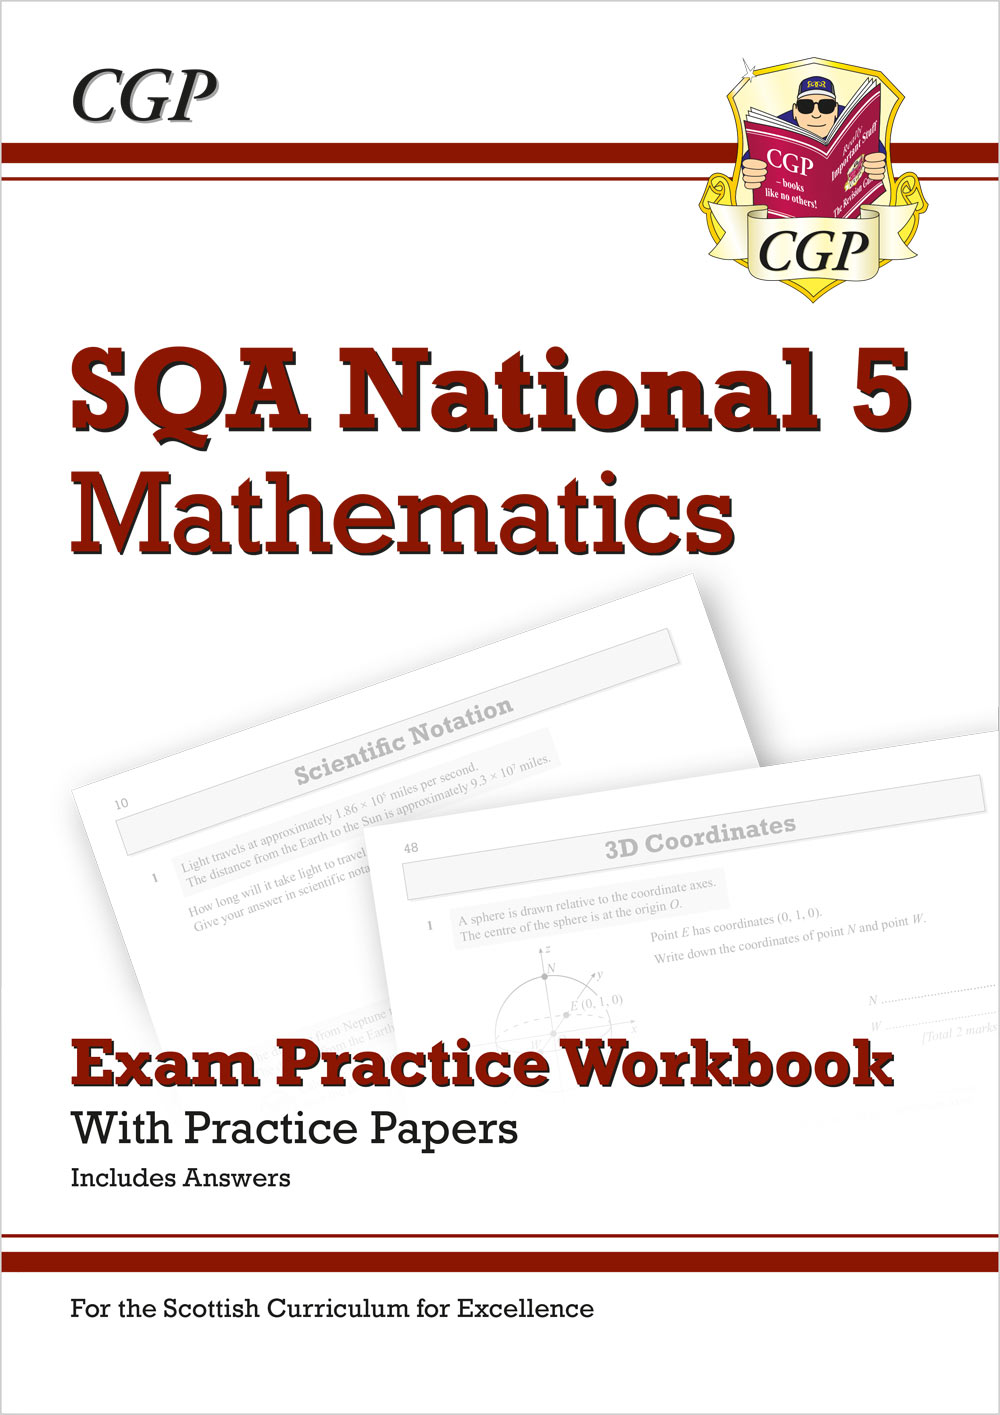 MZHQ41 - National 5 Maths: SQA Exam Practice Workbook - includes Answers